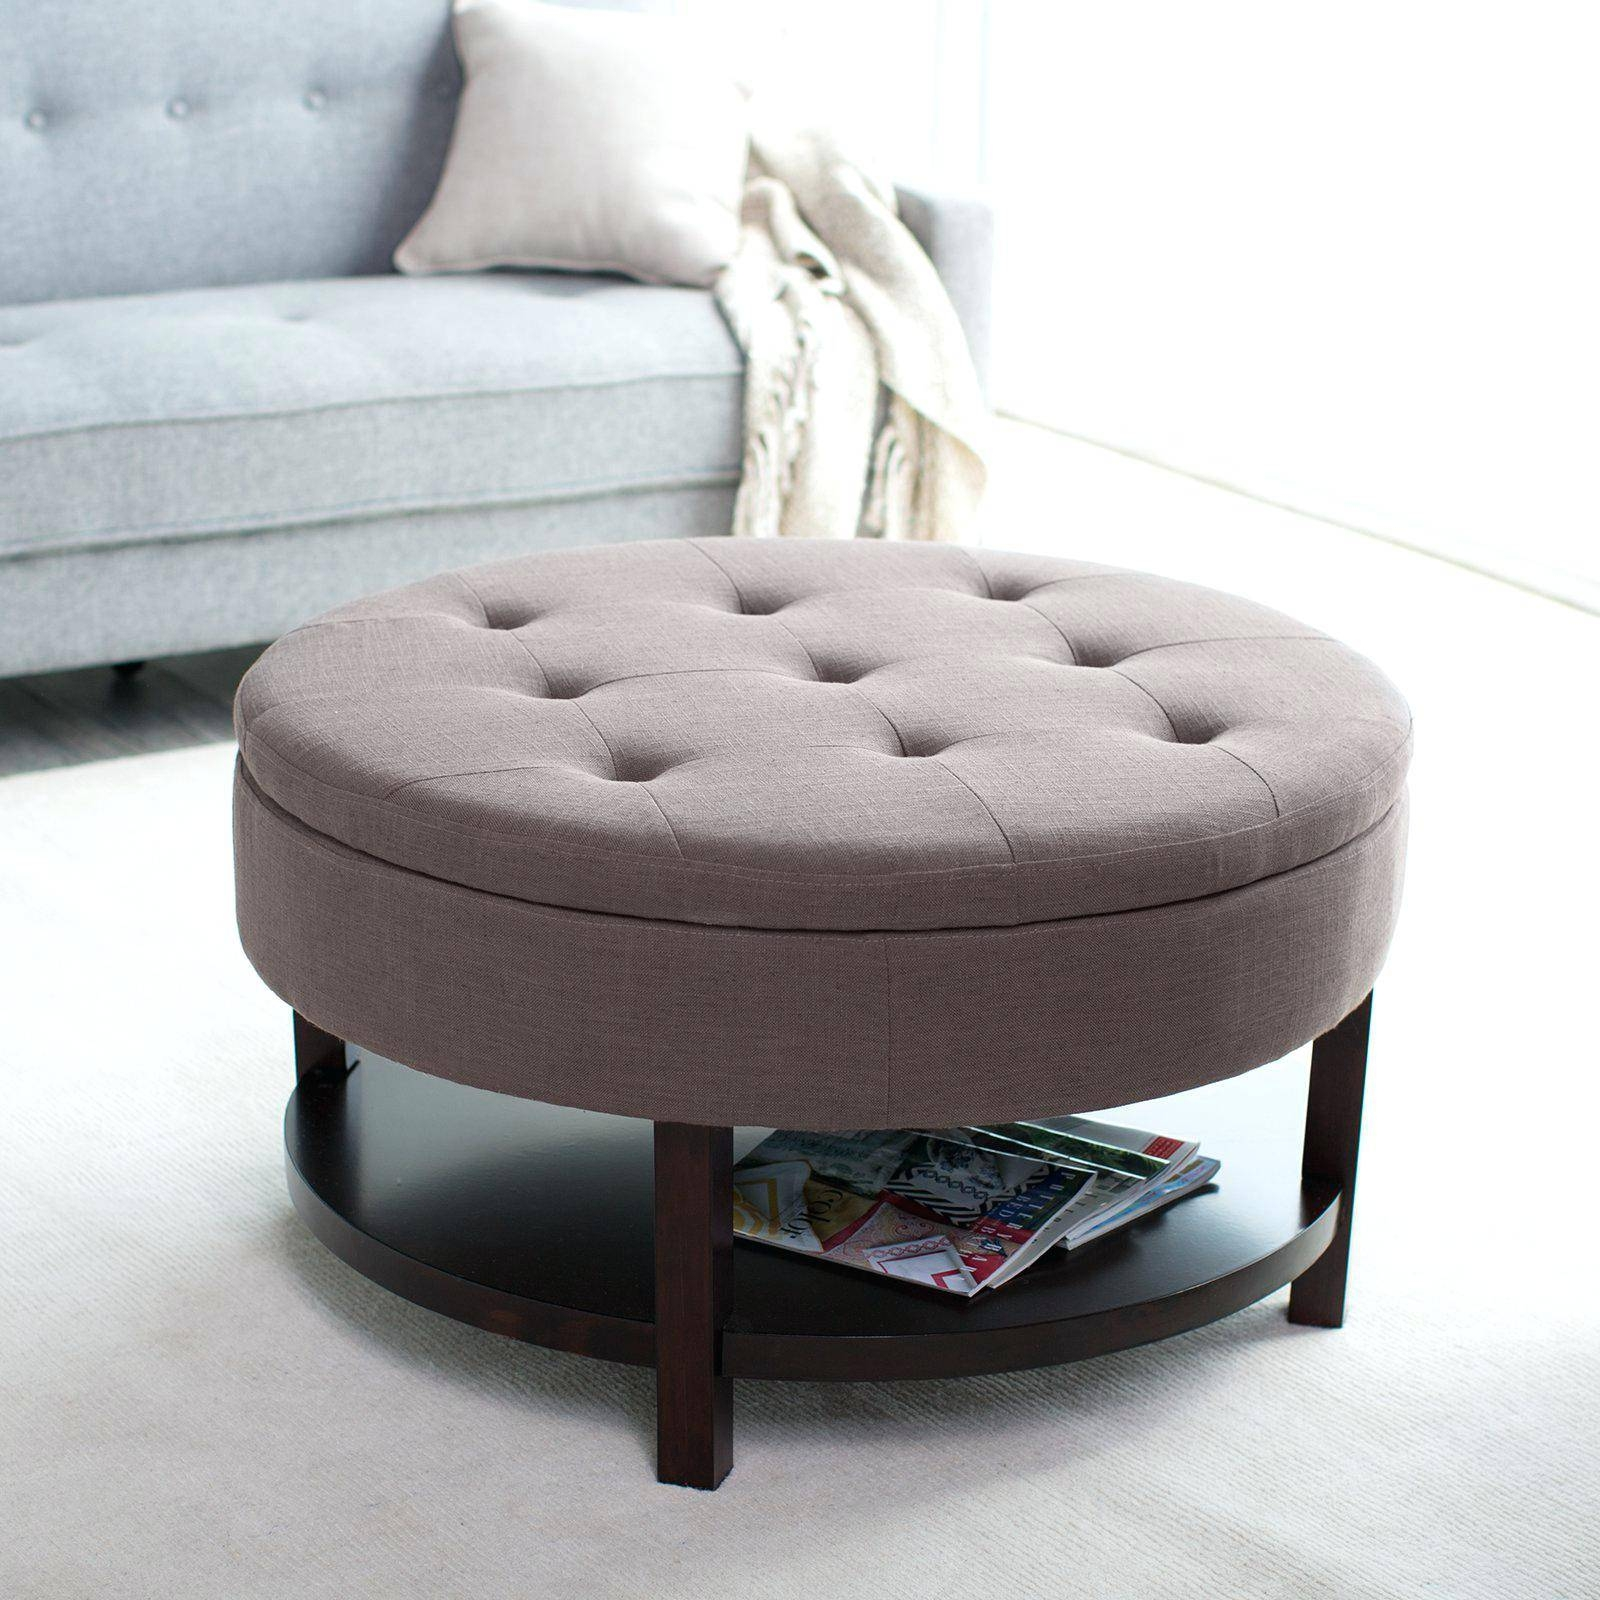 30 s Circular Coffee Tables With Storage